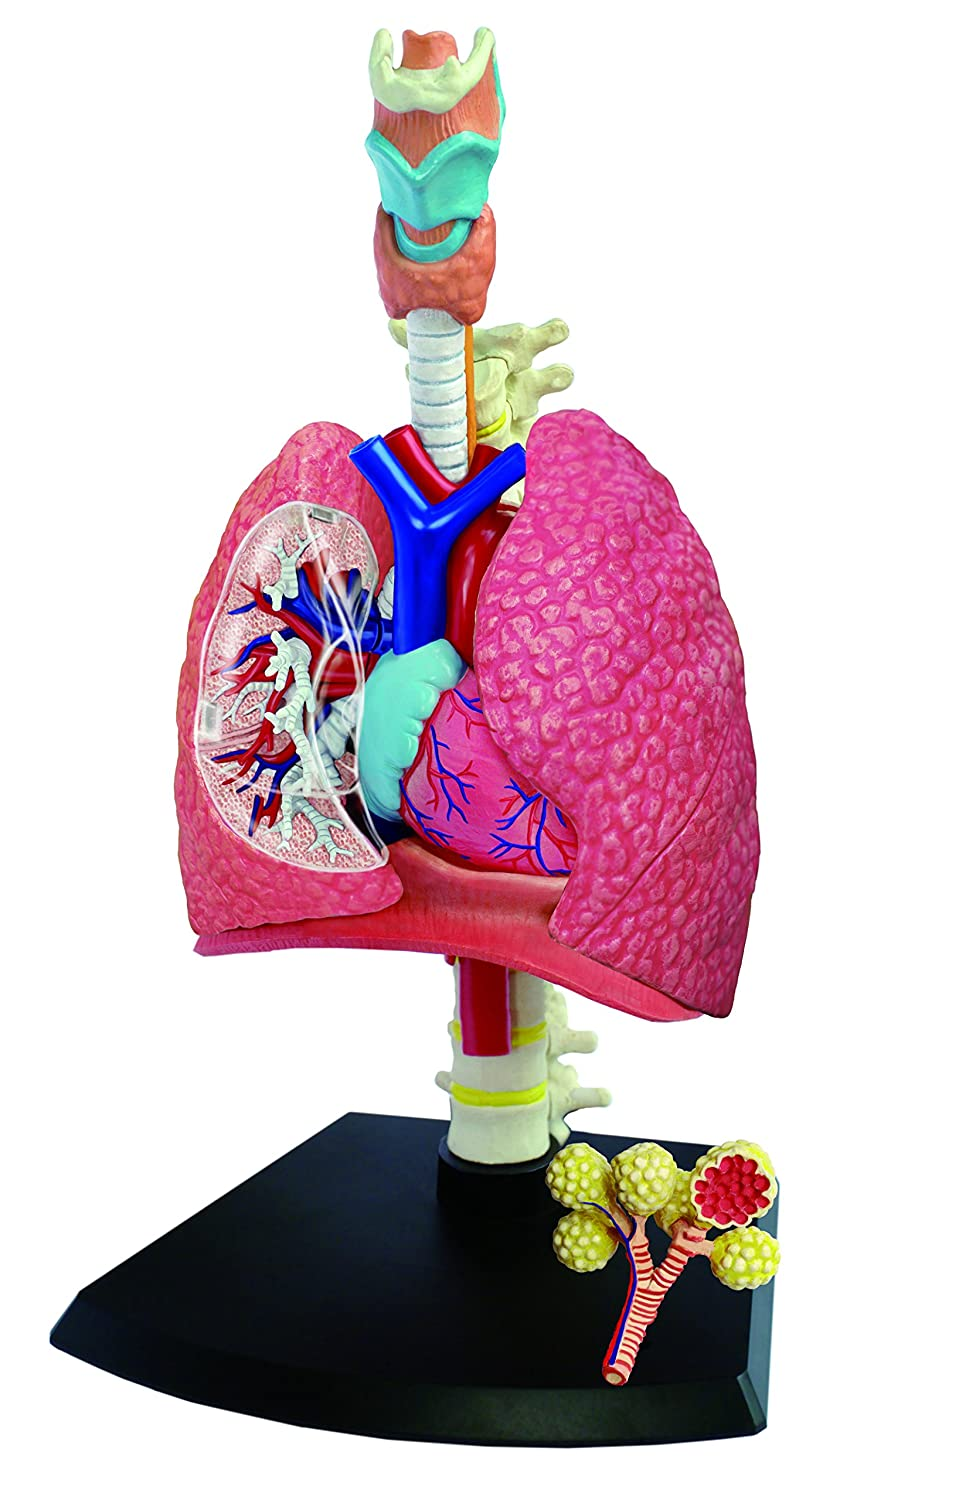 respiratory system model for kids